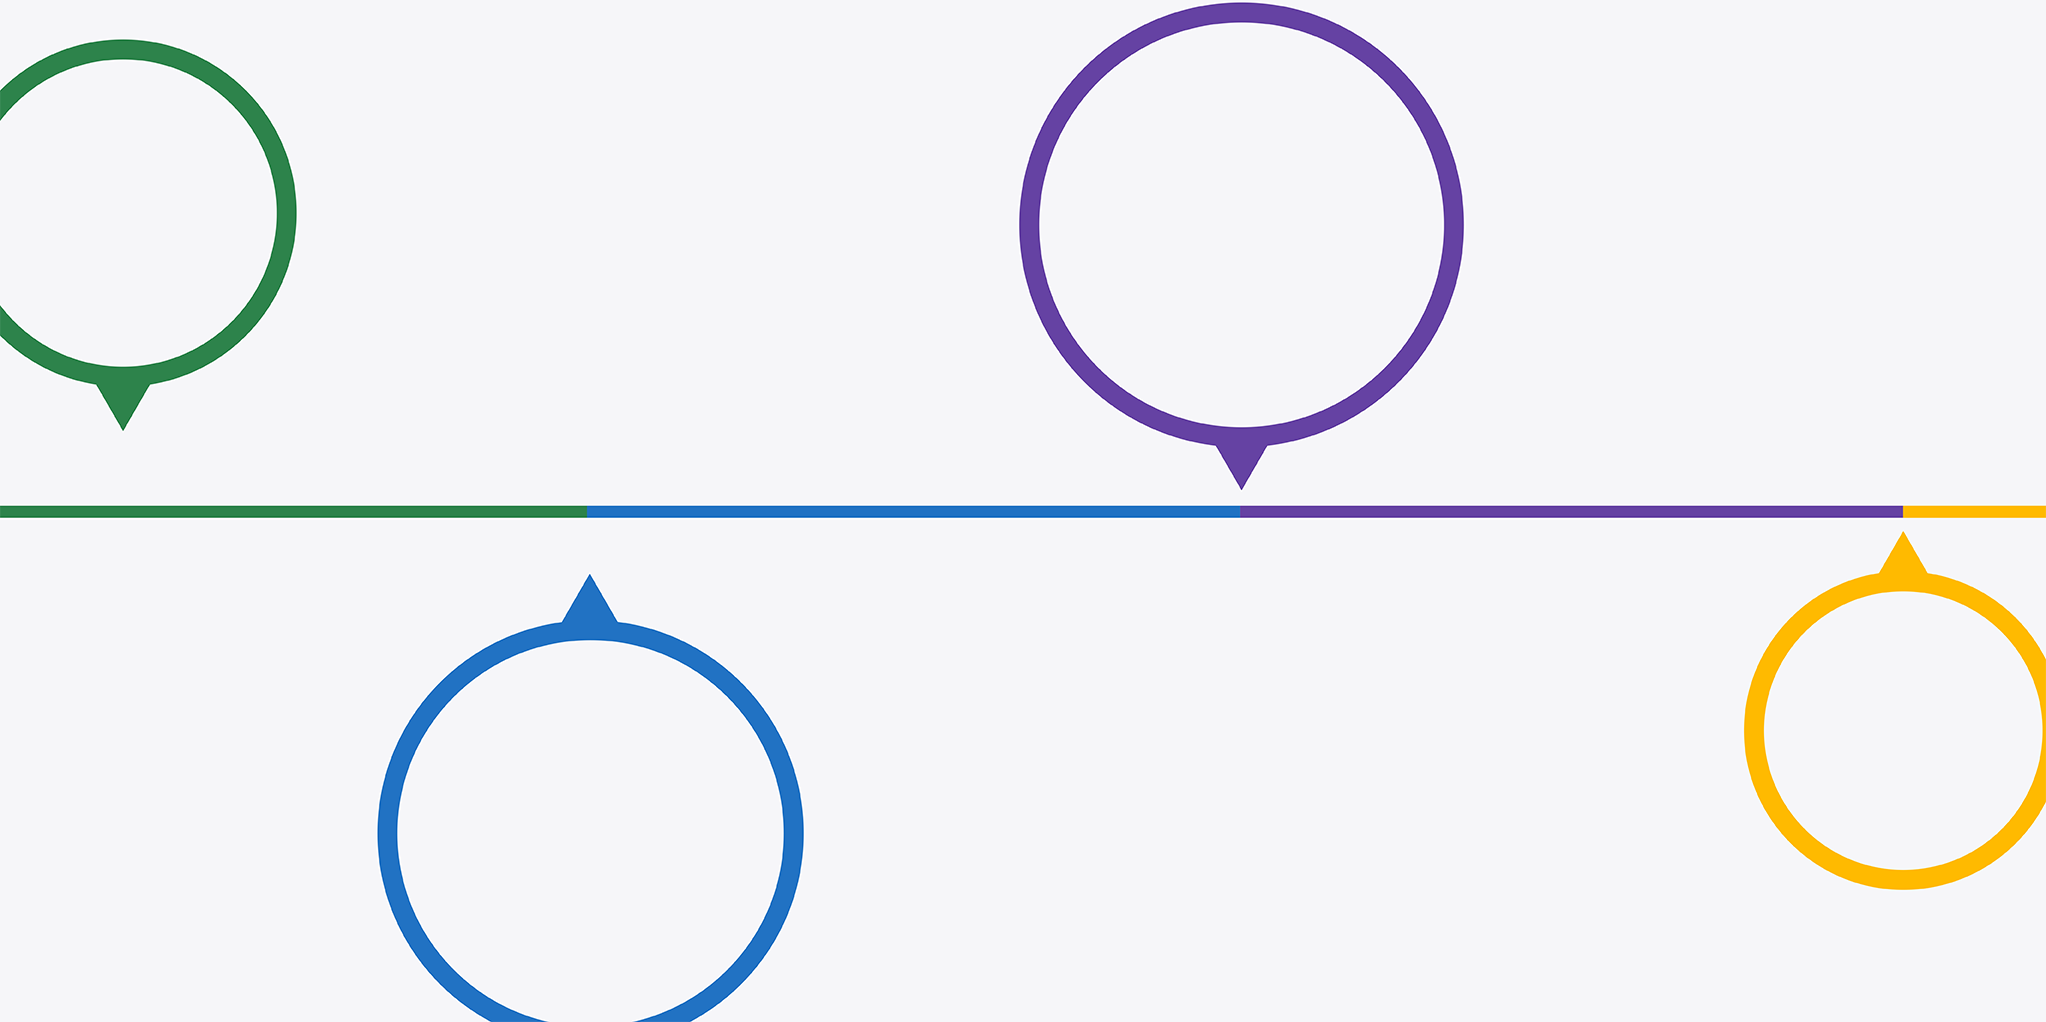 Graphic with colorful circles pointing to points on a line that corresponds with the color of the circle.